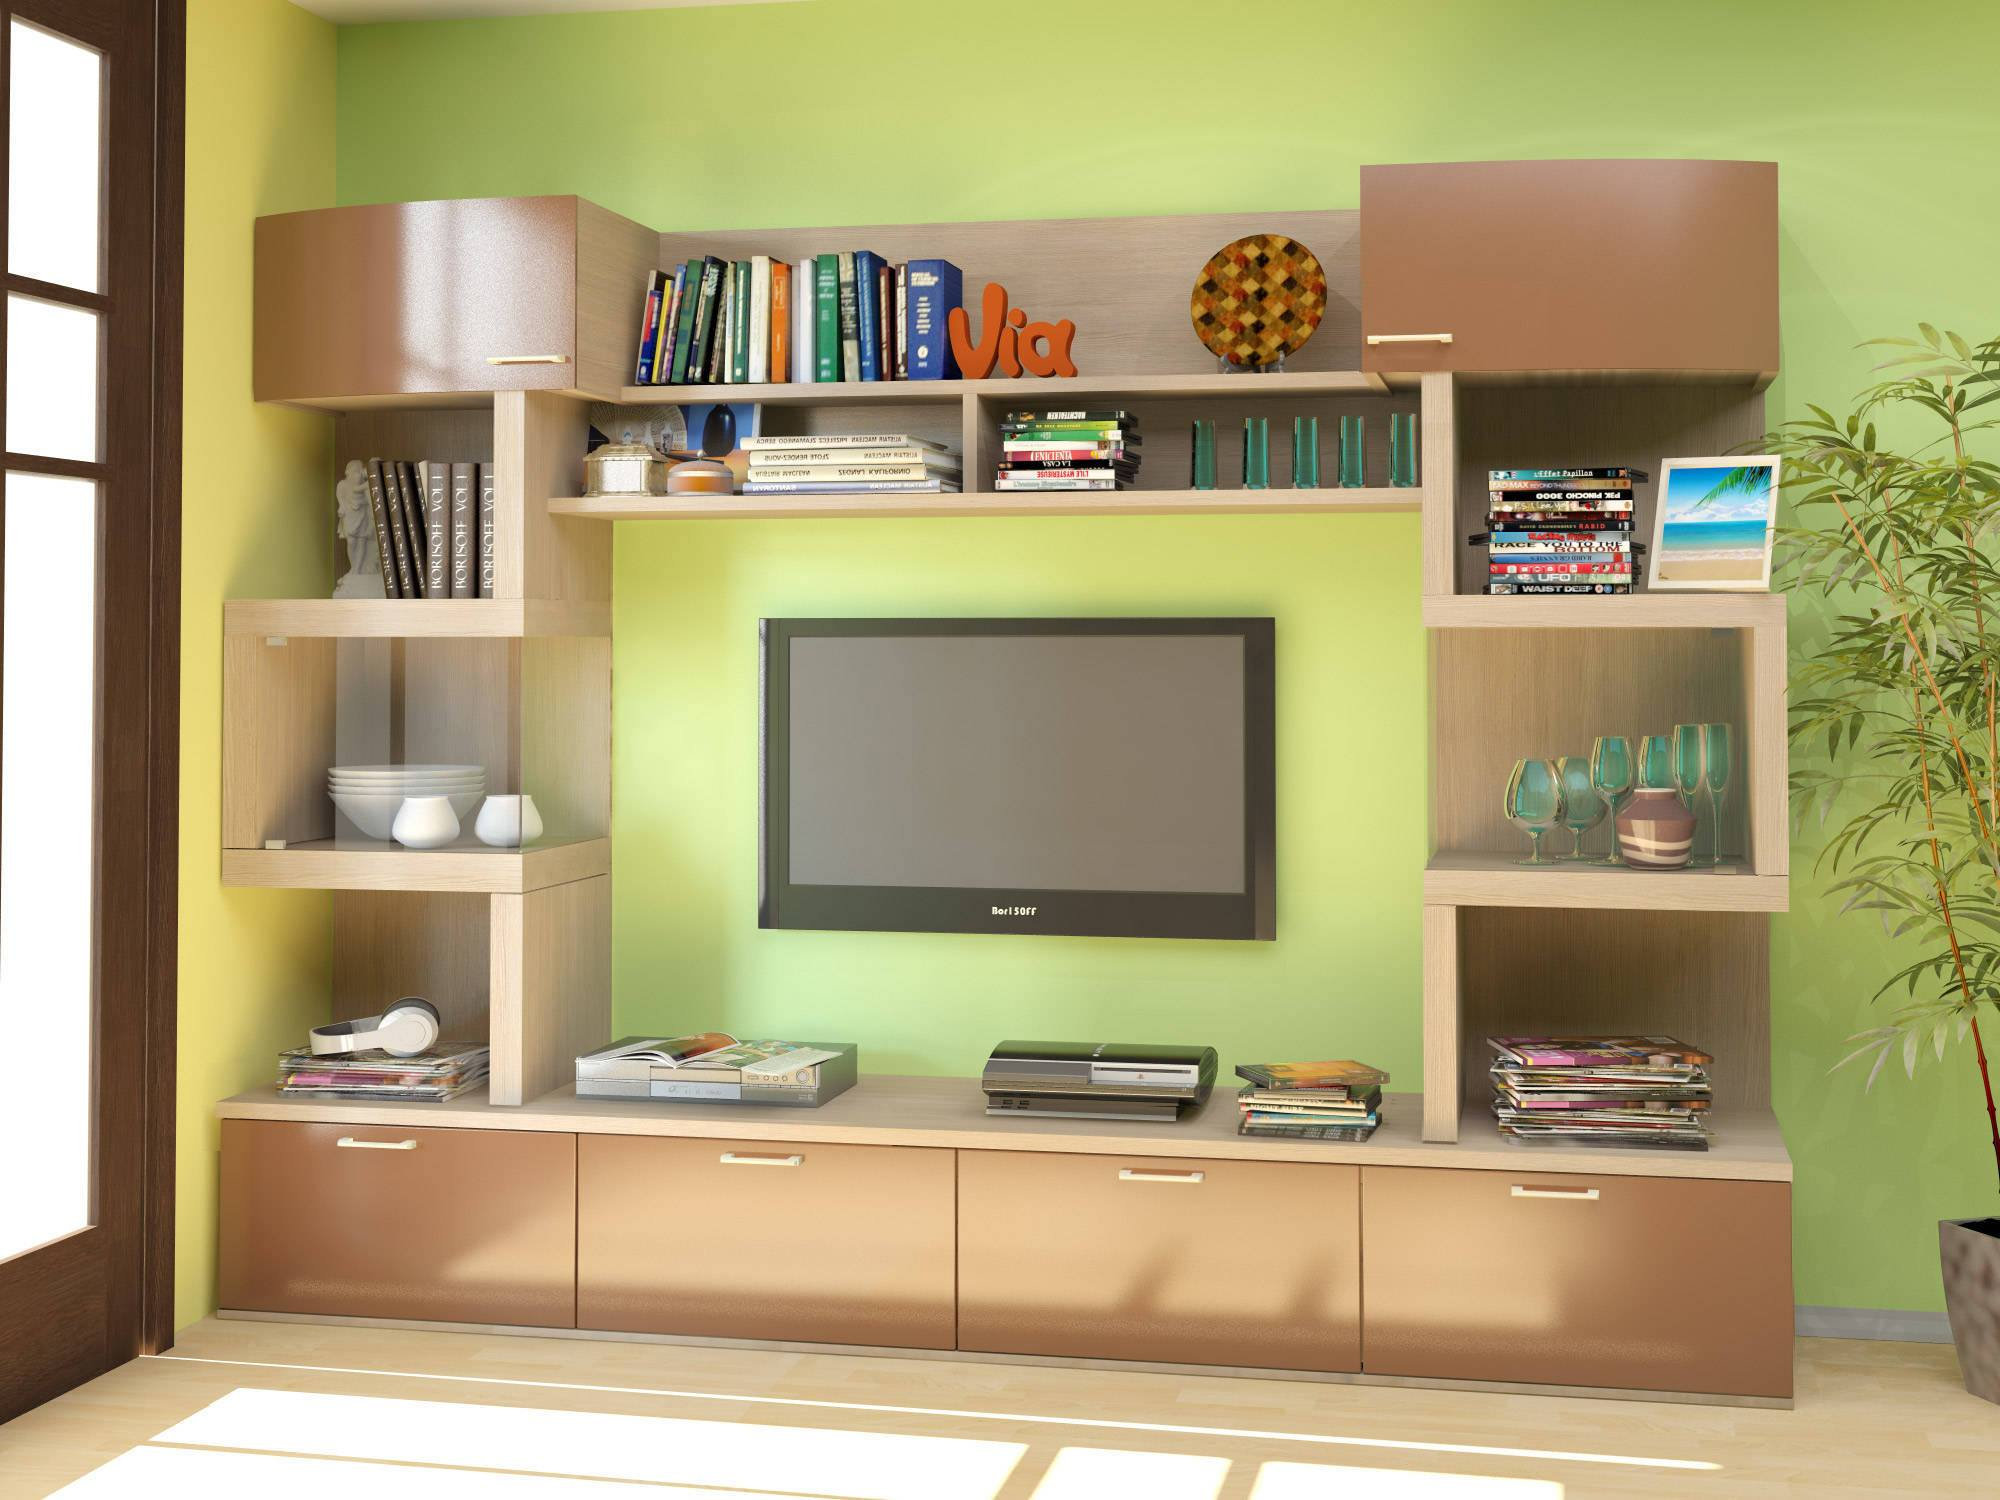 Lime paint of the walls and light wooden cabinet furniture around the TV